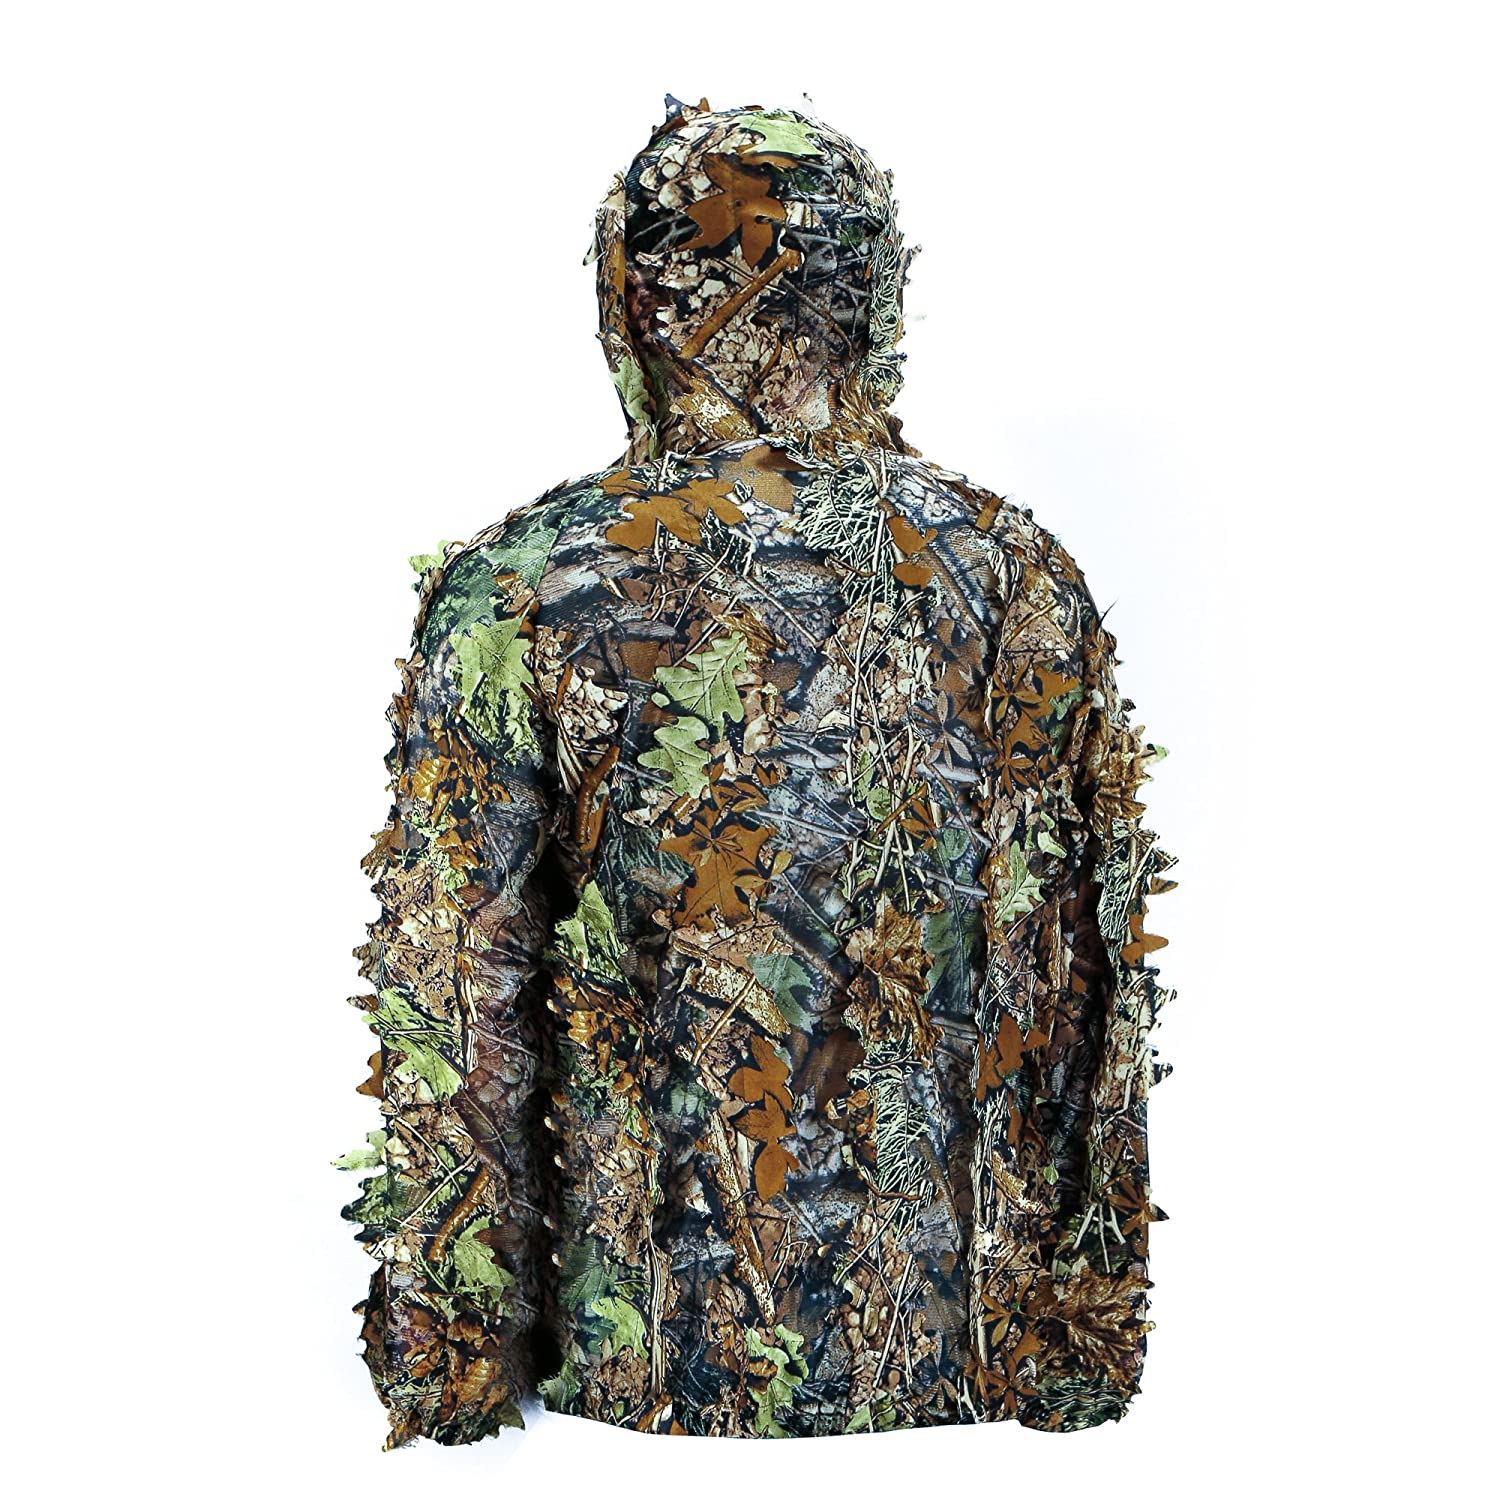 db3fda1e5d3a1 Amazon.com : Outdoor SLT Mens 3D Leafy Hooded Camouflage Hunting Suit :  Clothing